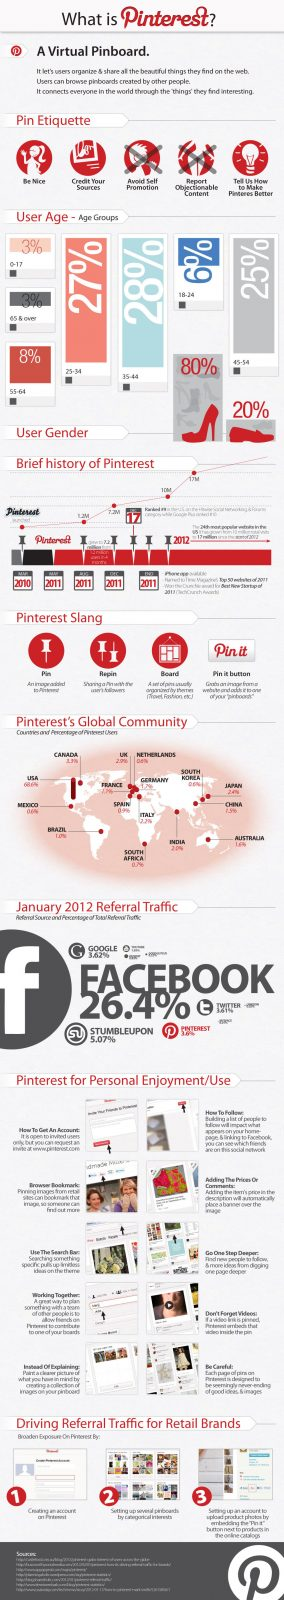 Pinterest: The Social Media Darling Of 2012 Infographic 2